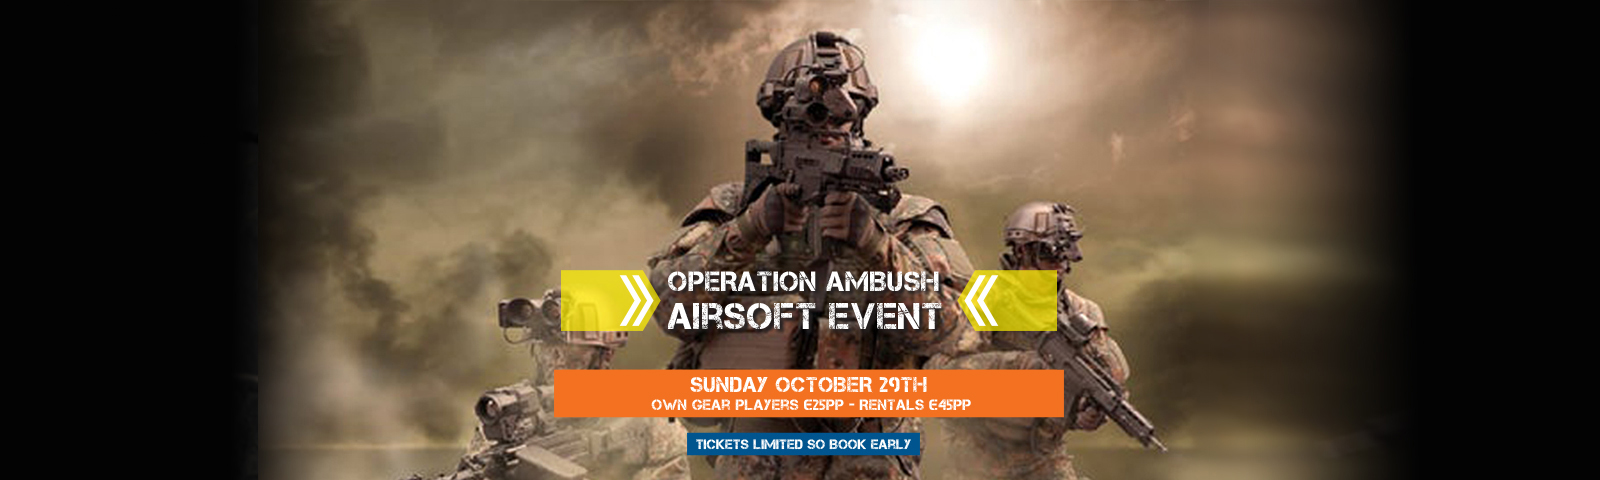 Final-Oct-Web-Event-airsoft_slider